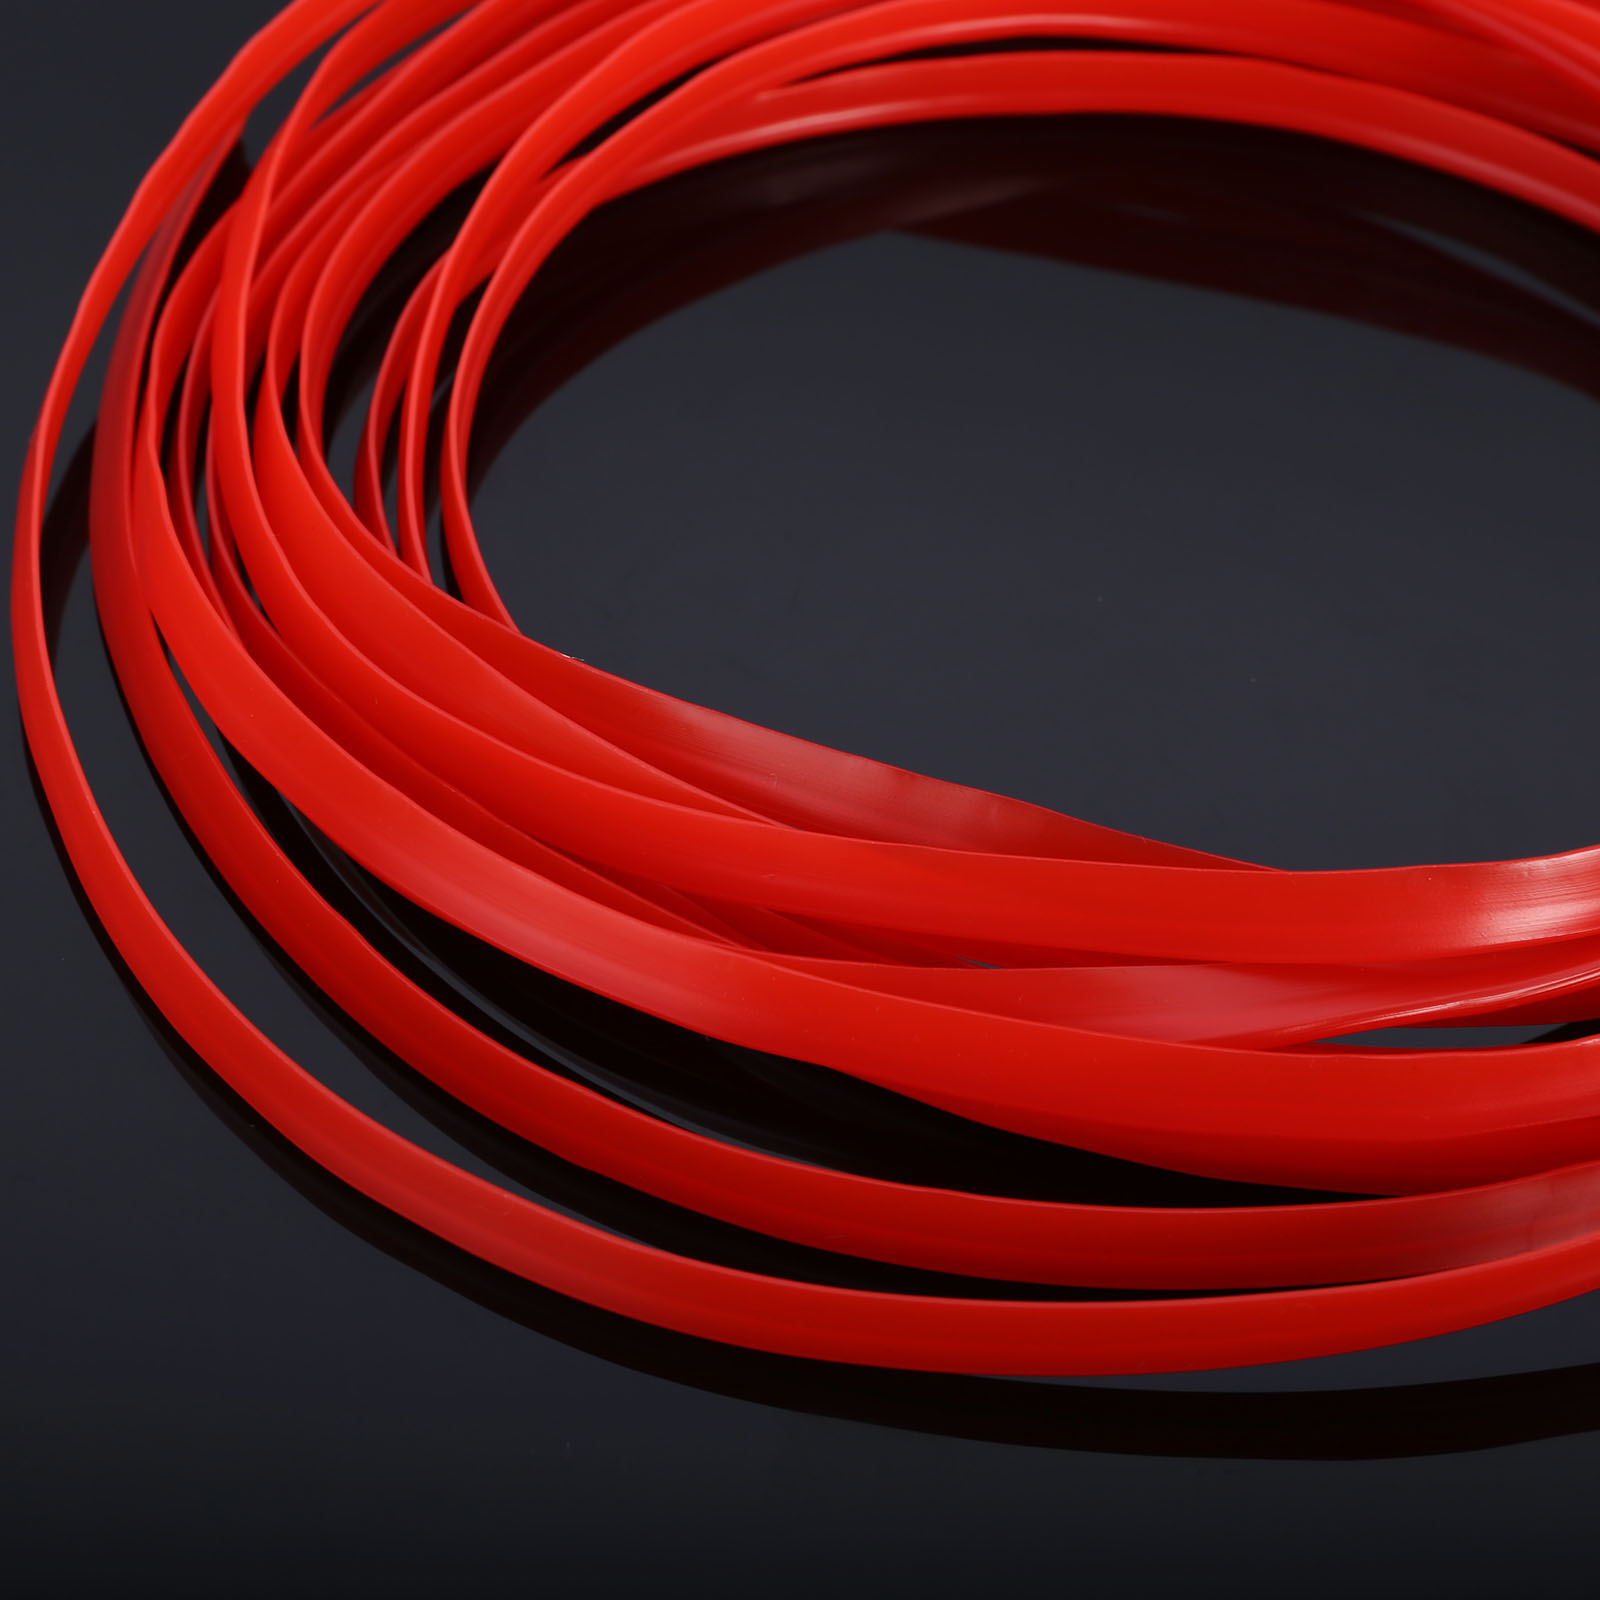 5m Car Styling Interior Matte Red Trim Strip Moulding Trim DIY Stickers Auto Decorative Strips Line Decoration michael michael kors легкое пальто